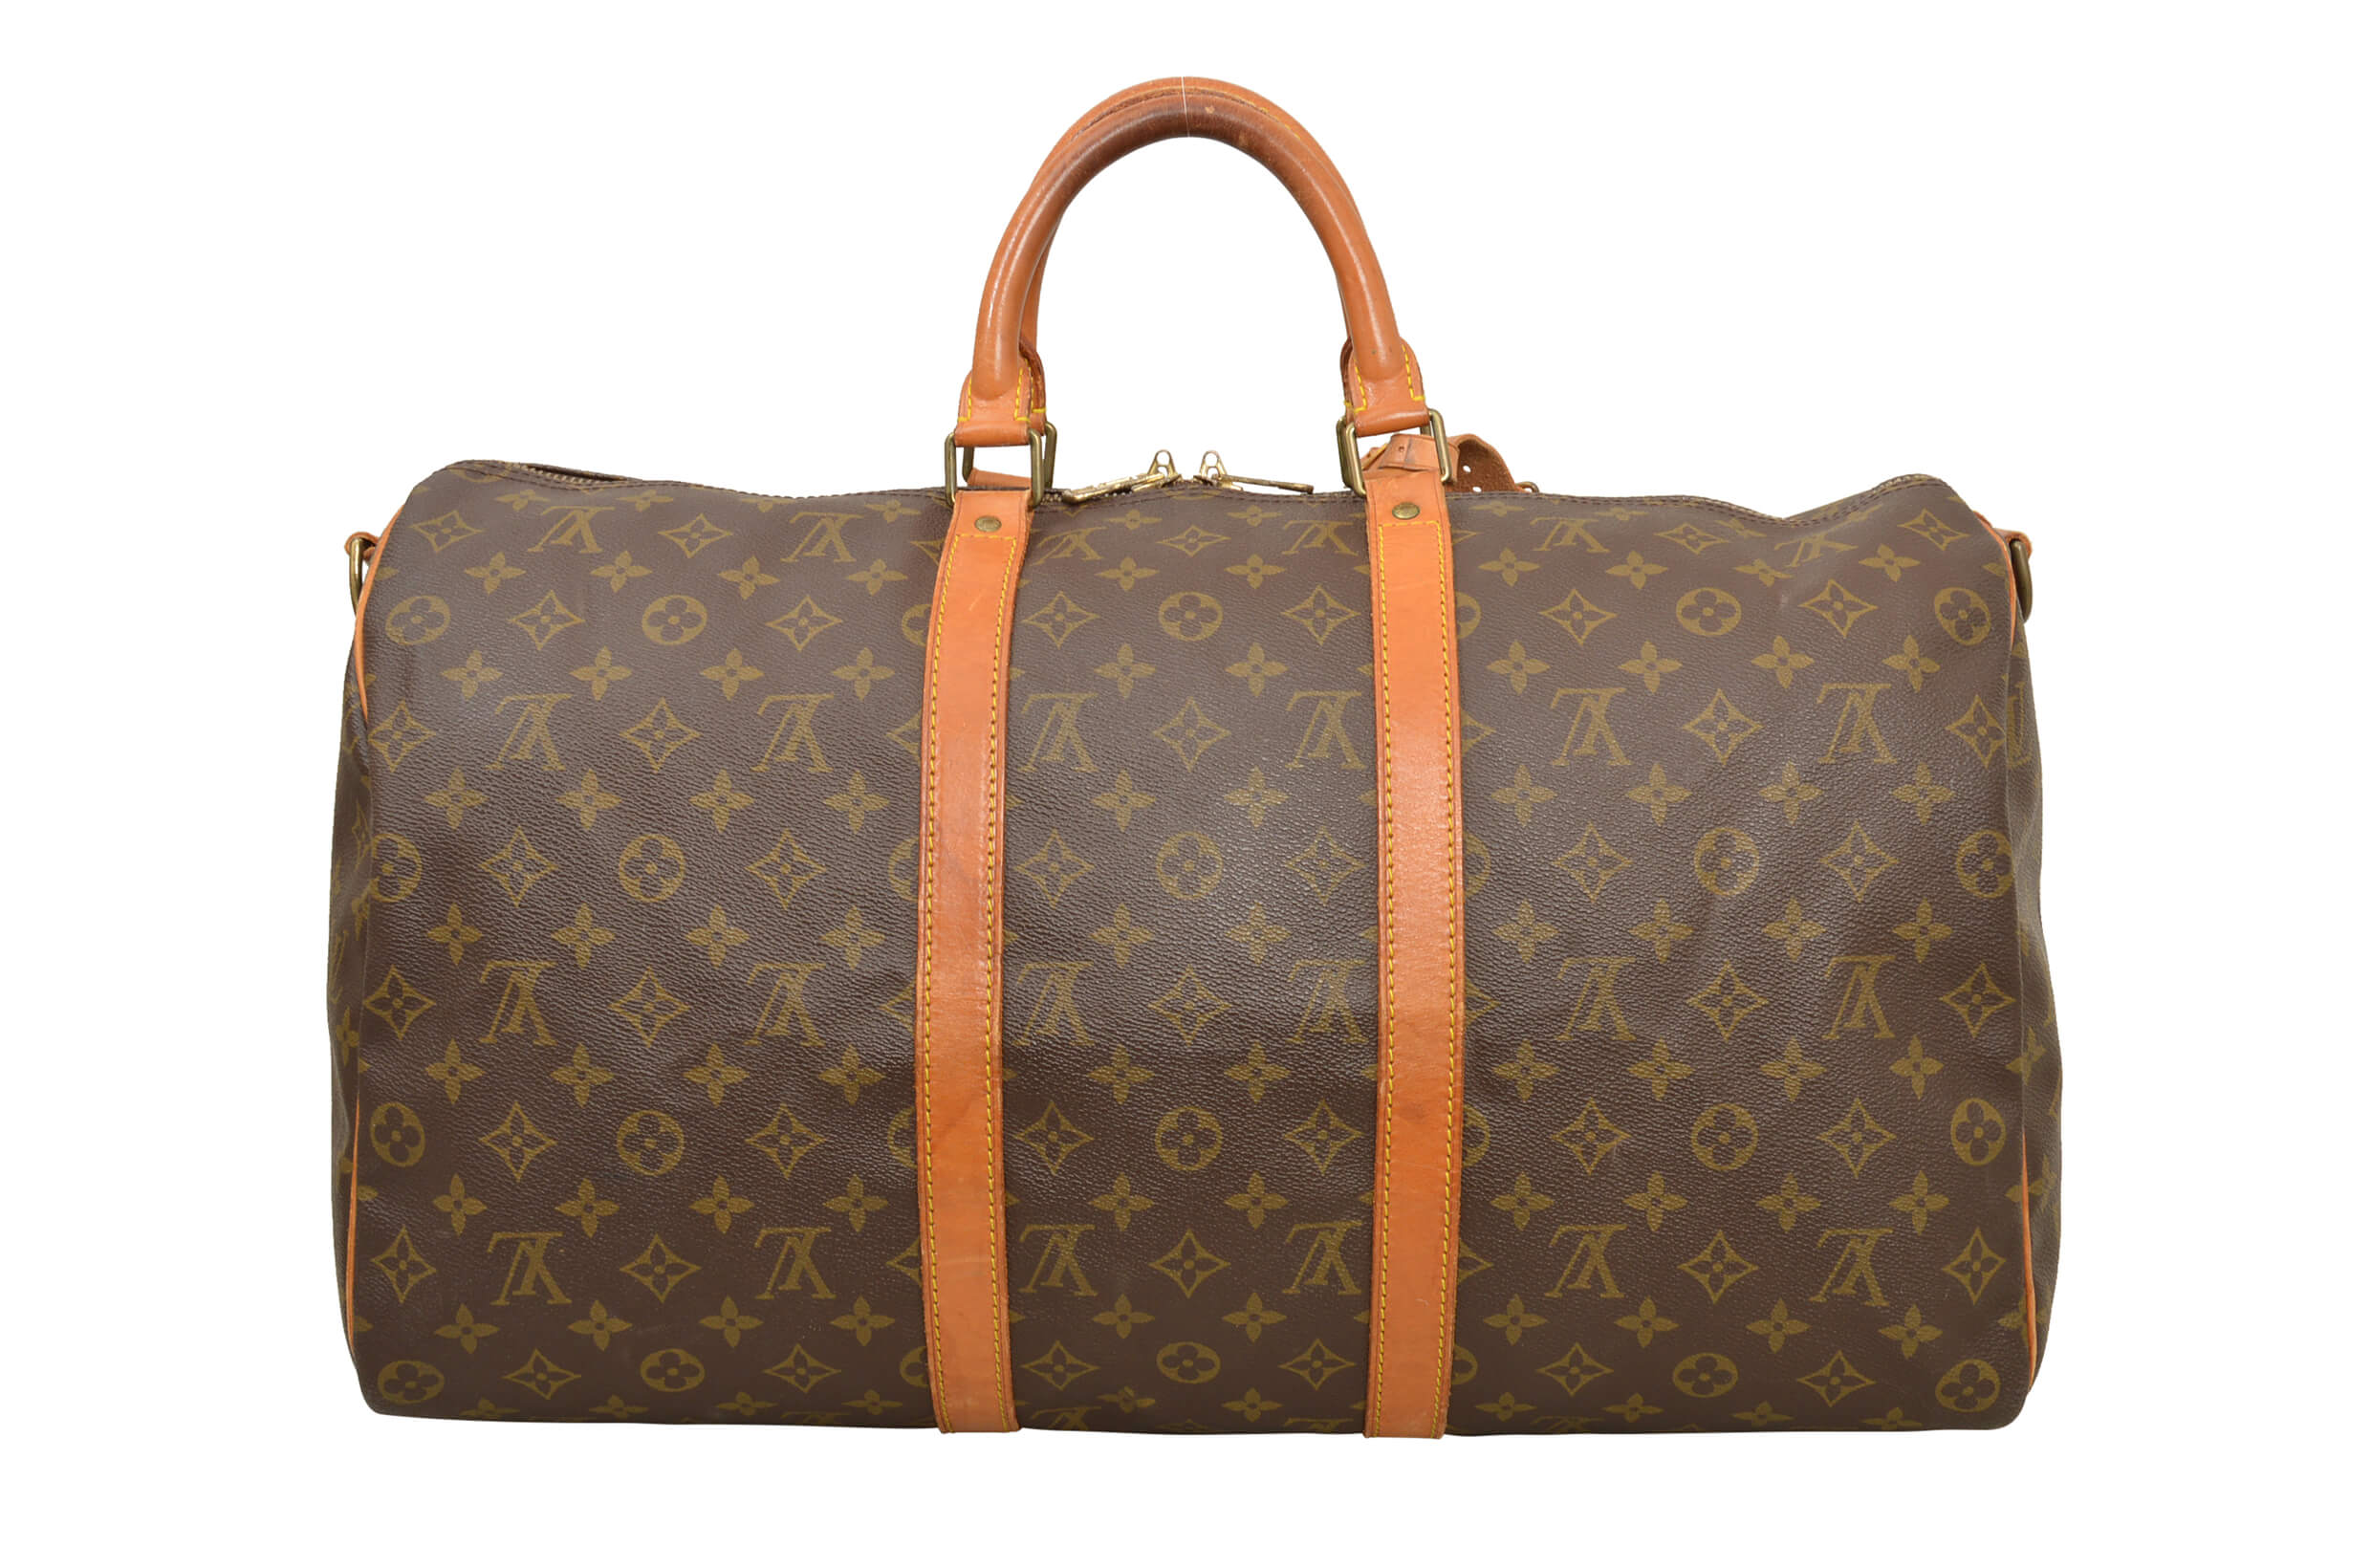 louis vuitton monogram keepall 45 bandouliere travel bag m41418 d02988 ebay. Black Bedroom Furniture Sets. Home Design Ideas